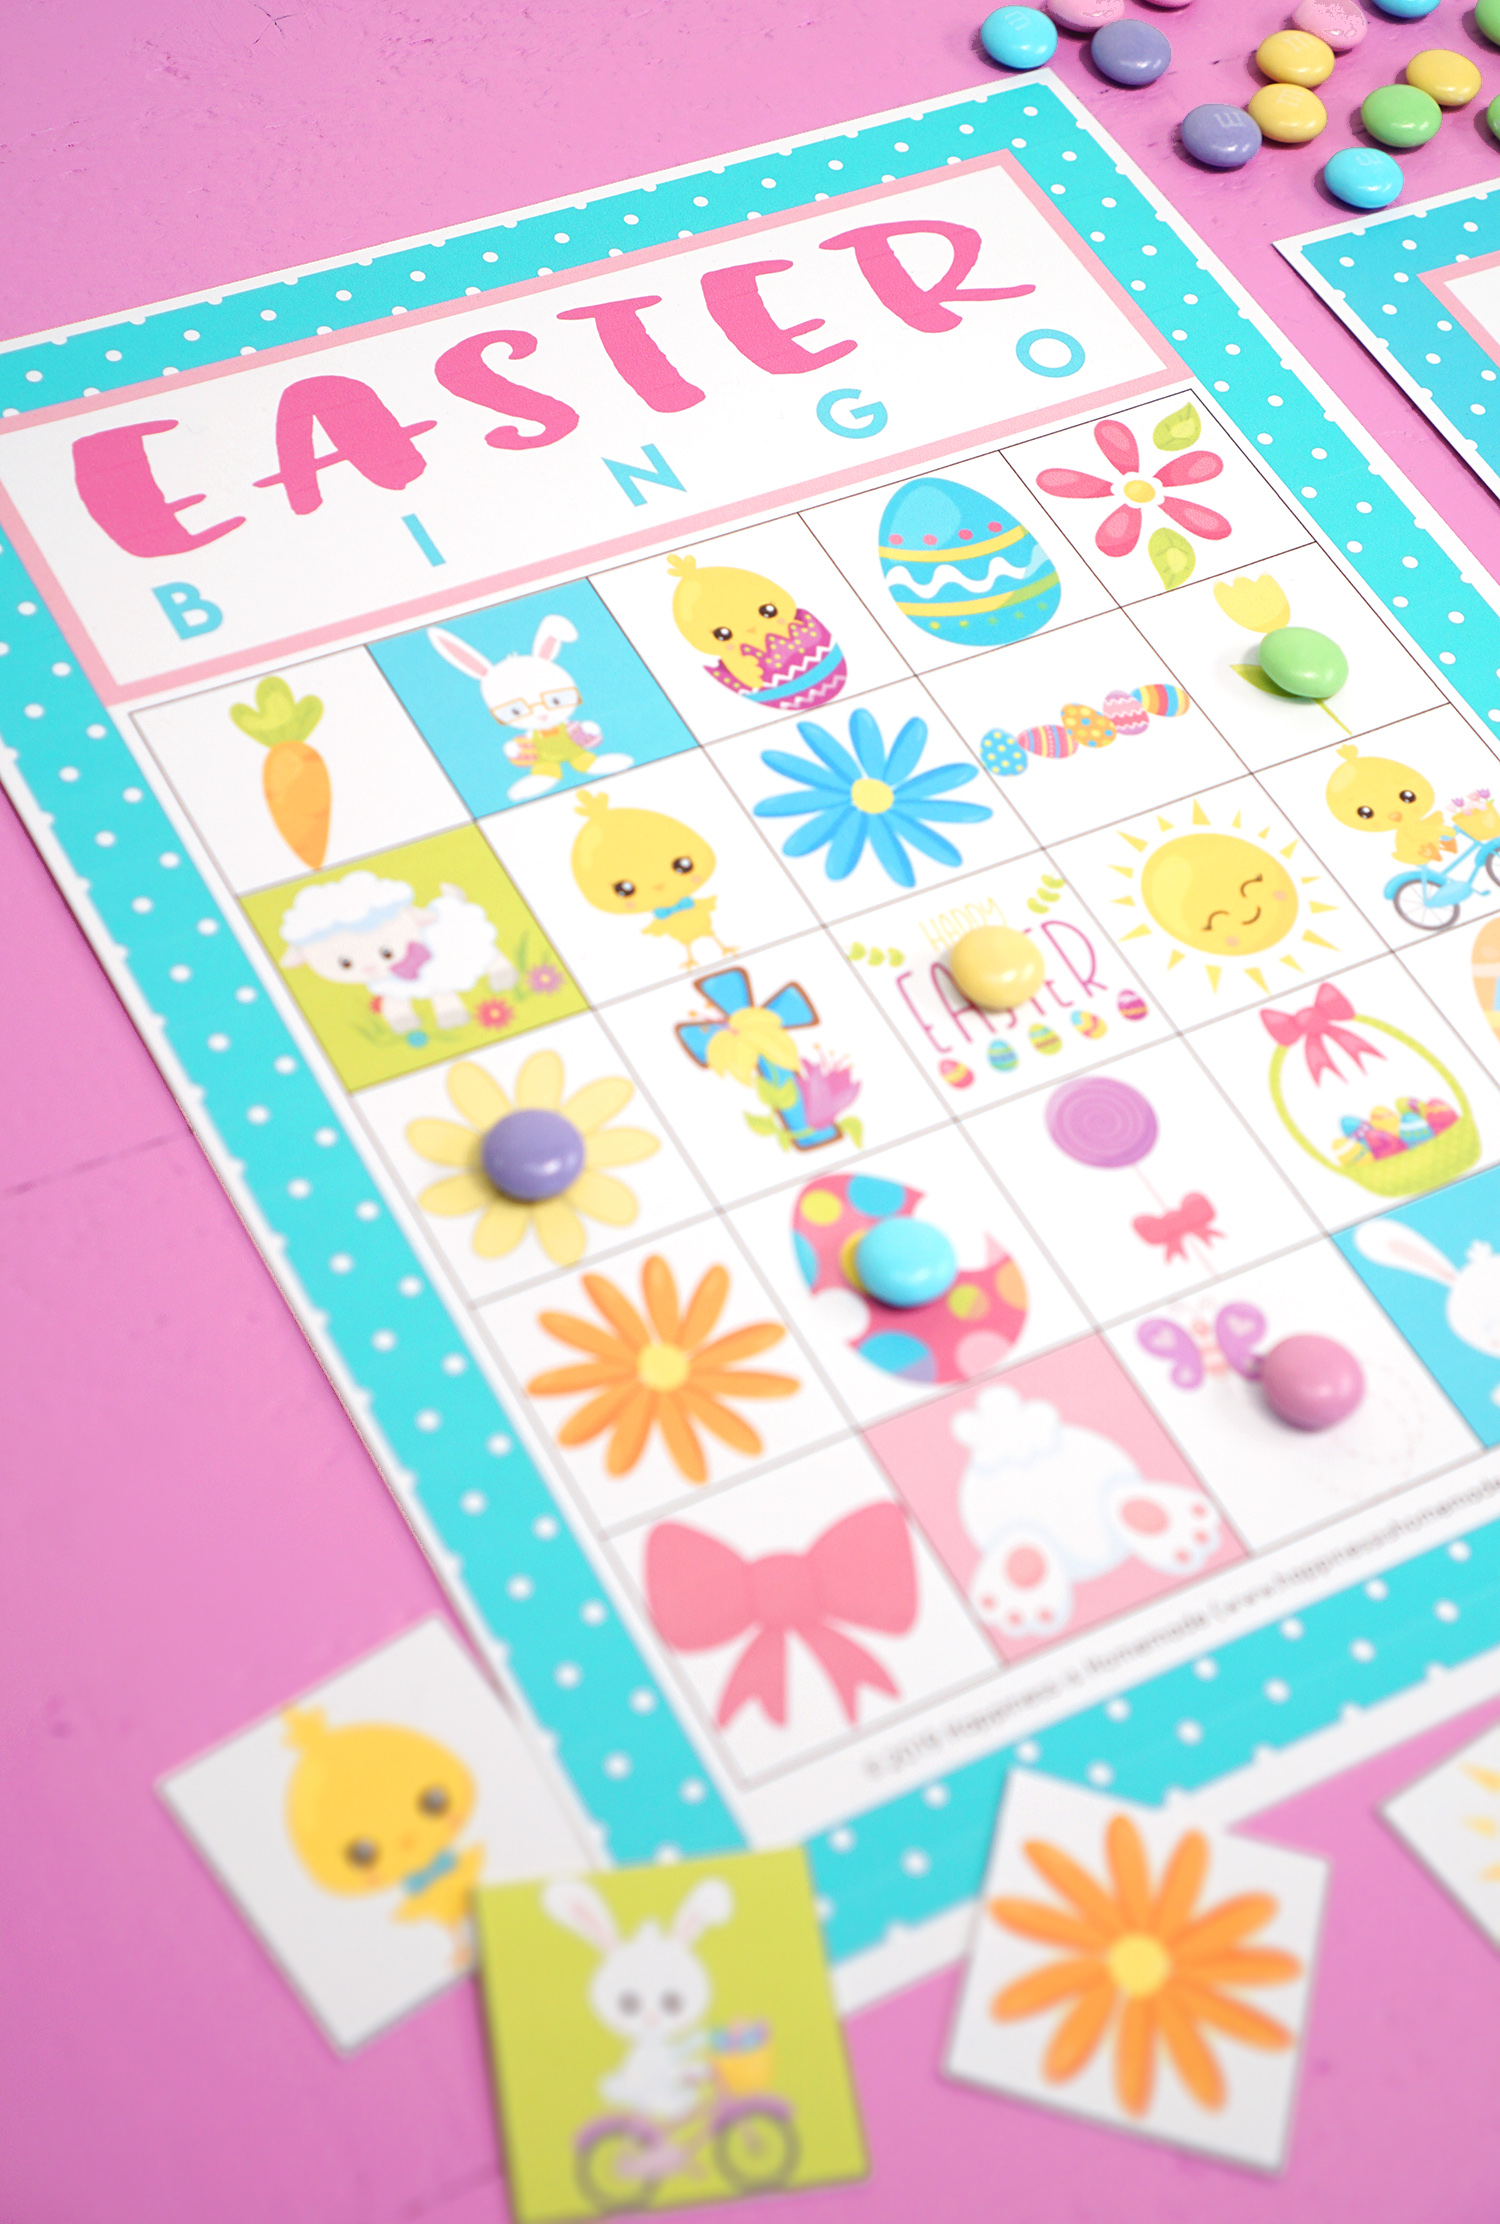 picture about Free Printable Easter Bingo Cards titled Totally free Printable Easter Bingo Video game Playing cards - Contentment is Selfmade